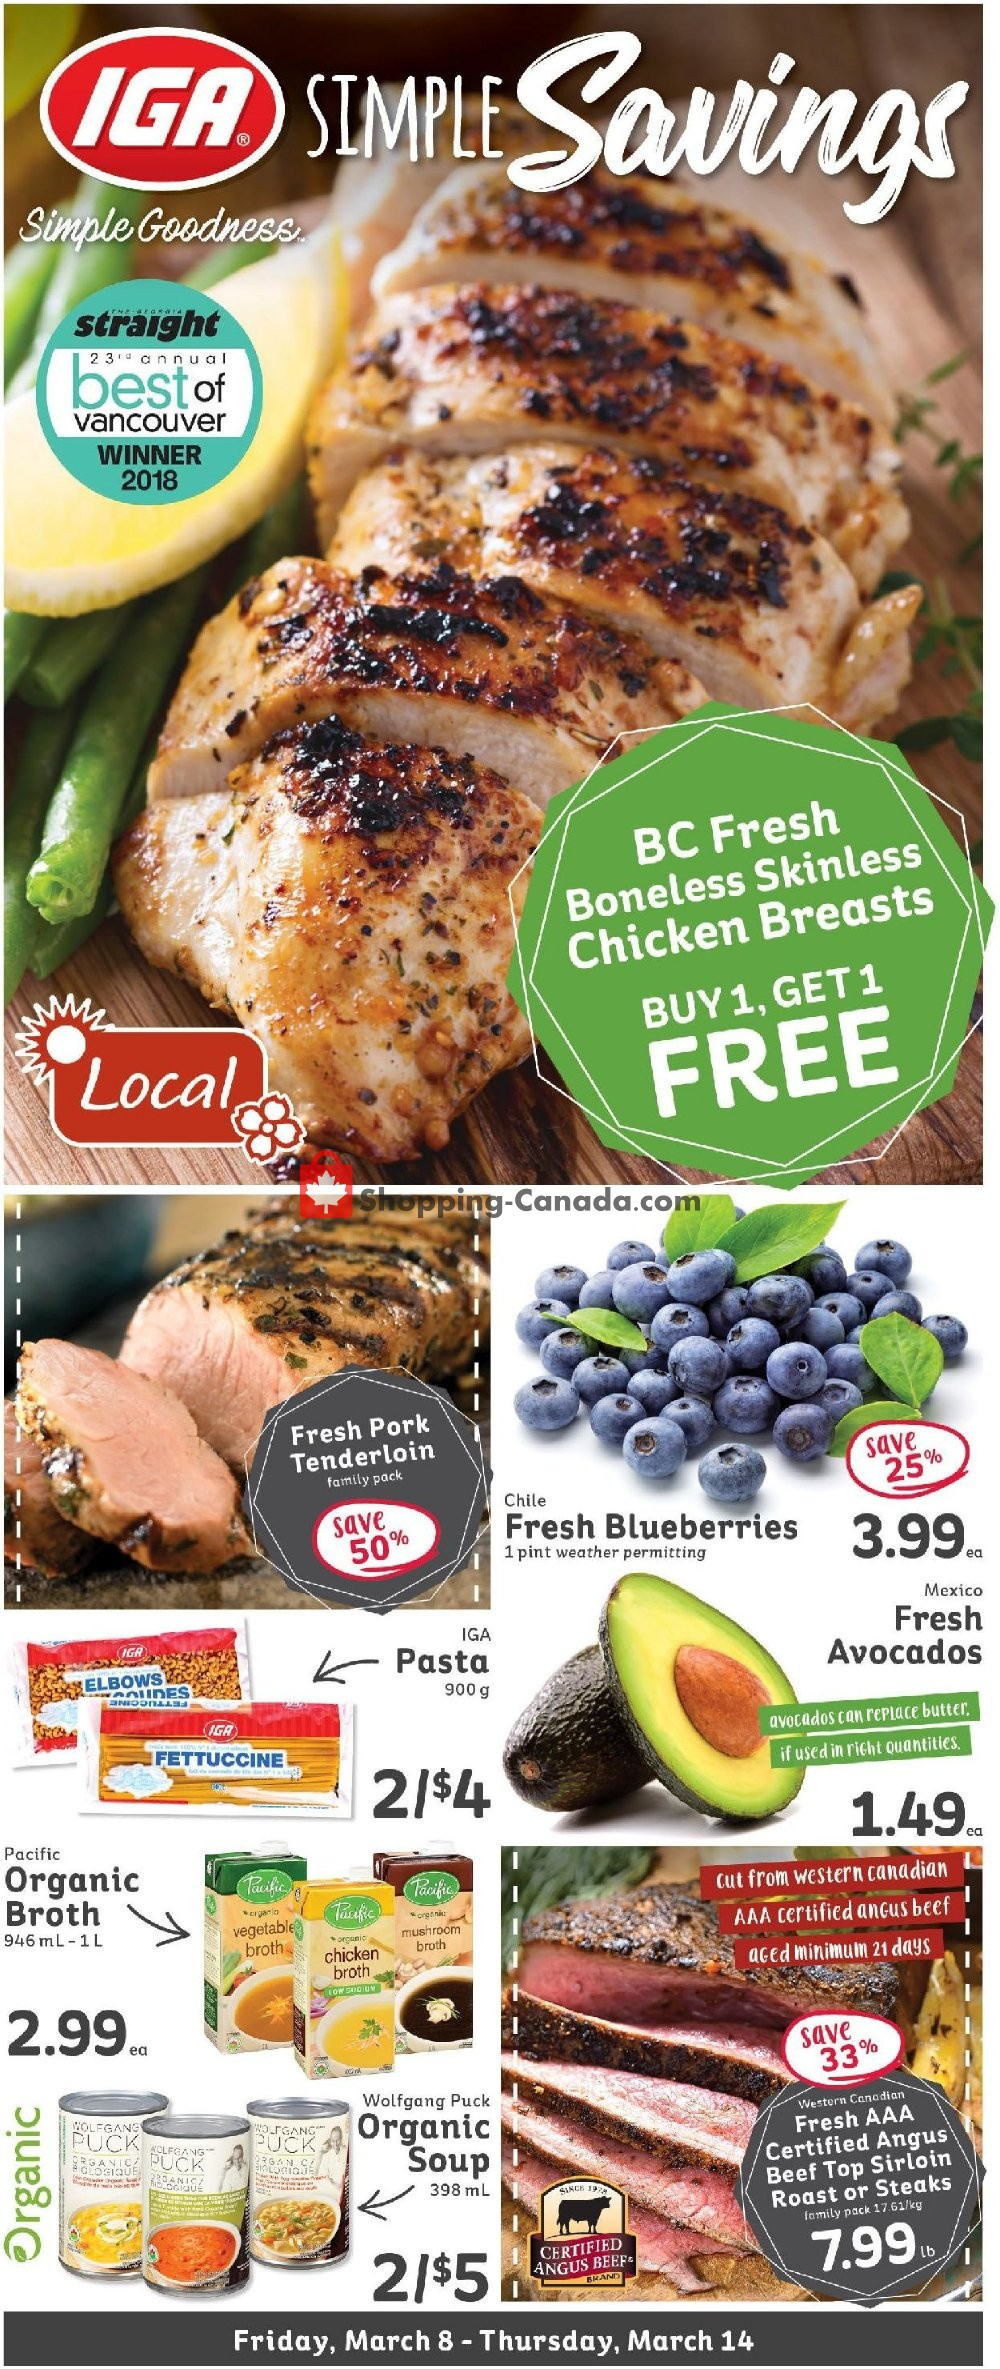 Flyer IGA Extra Canada - from Friday March 8, 2019 to Thursday March 14, 2019